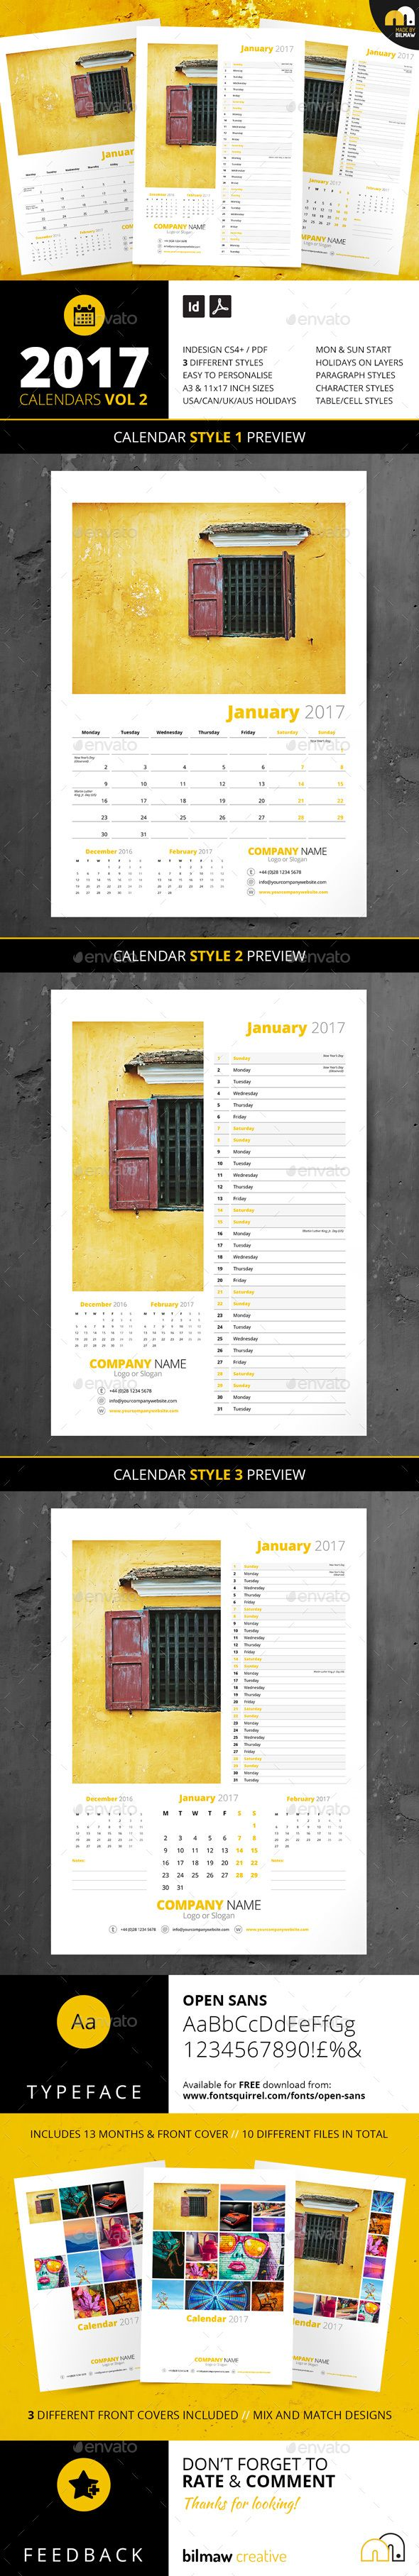 Calendars Vol 2 - Calendars Stationery / Wall calendar / Template / Edit / Print / Business Promotion